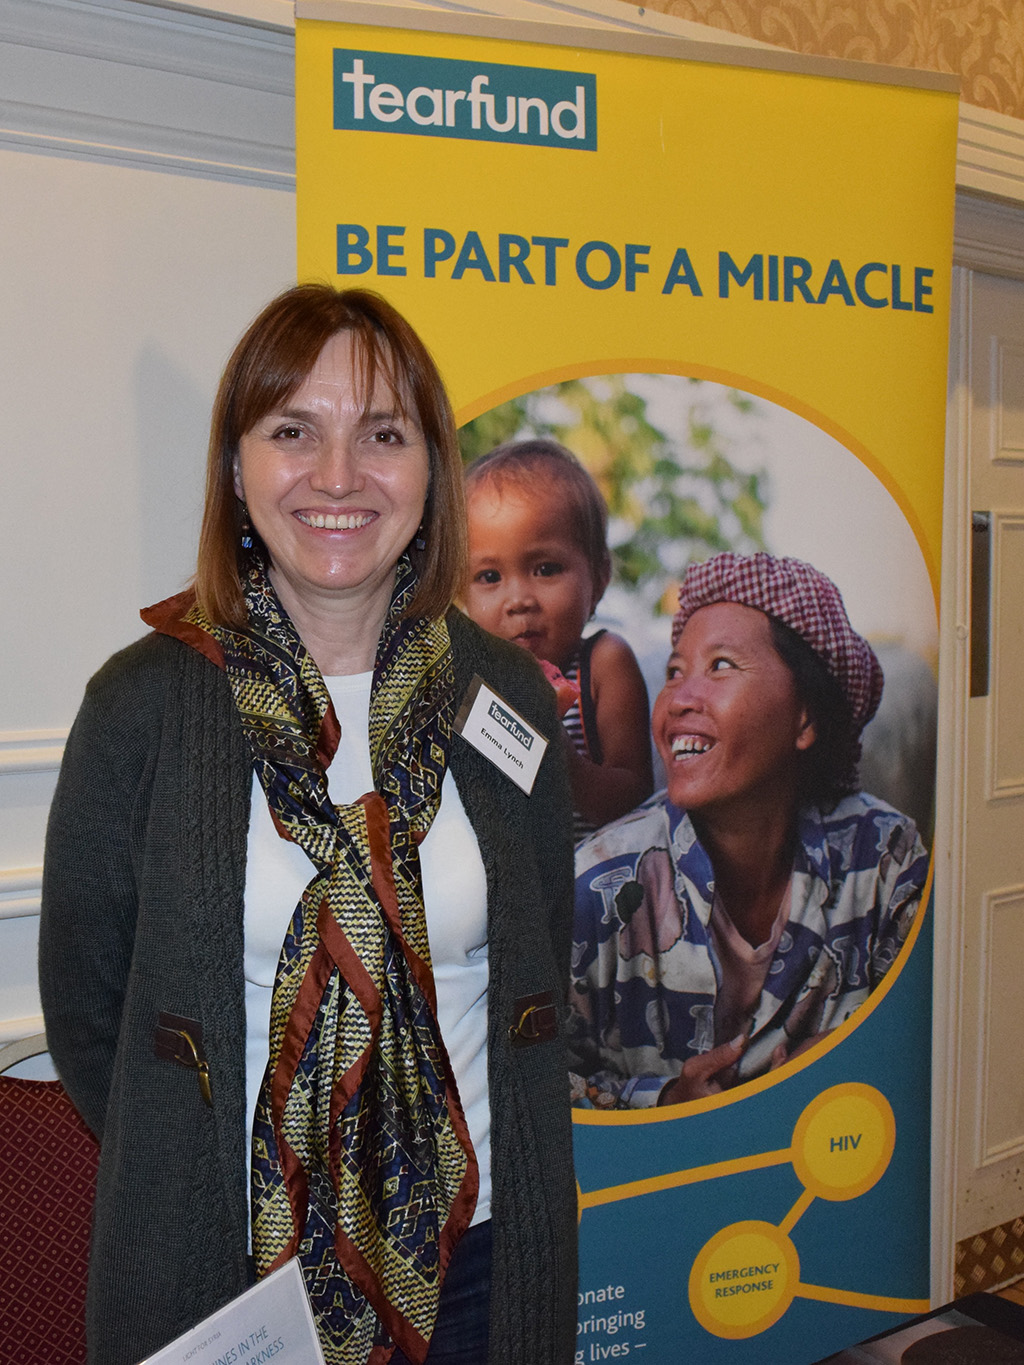 Emma Lynch - Tearfund